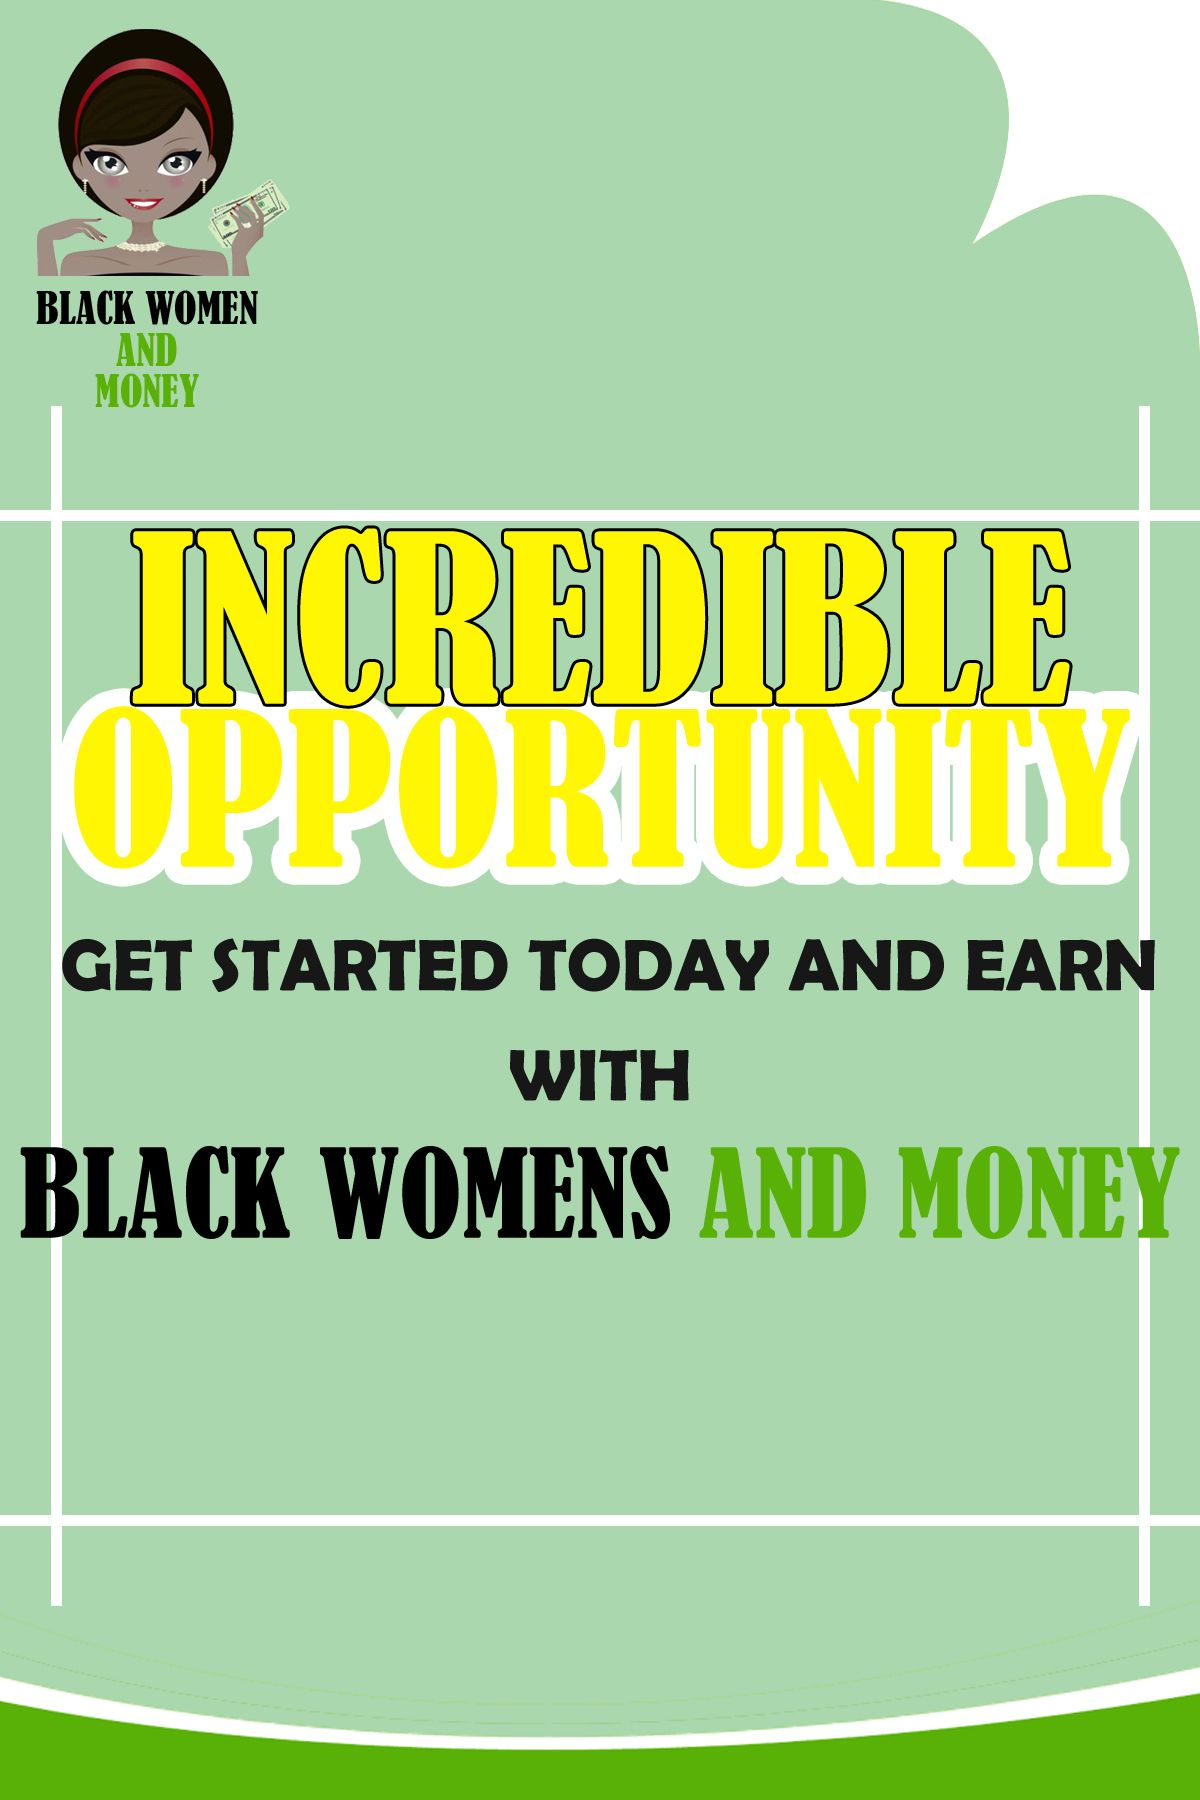 Incredible Opportunity Women Money The Incredibles Get Started